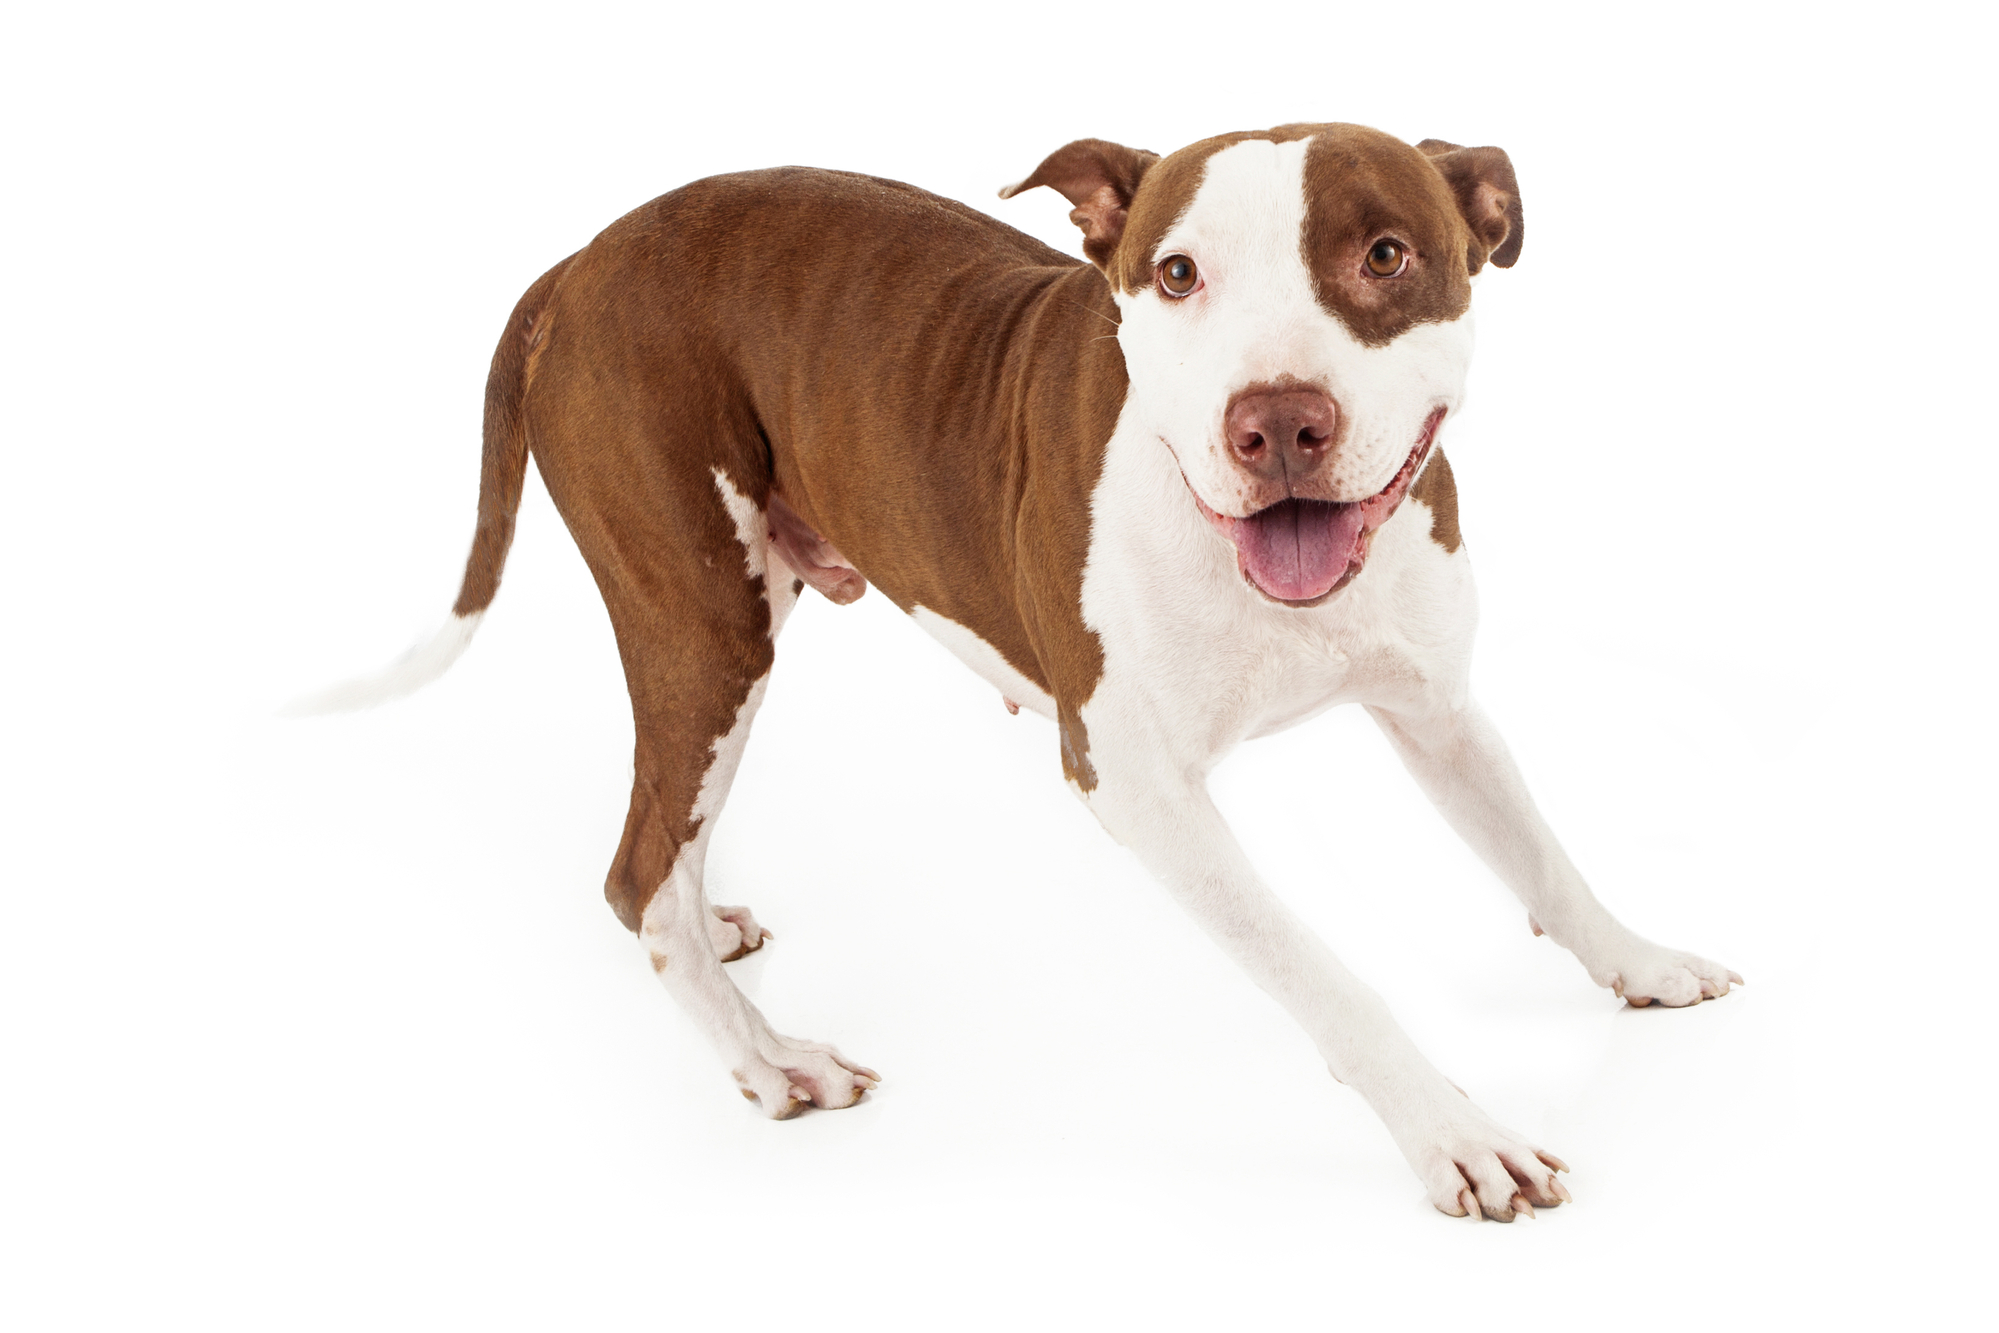 A happy and playful Pit Bull dog looking at the camera with a smile